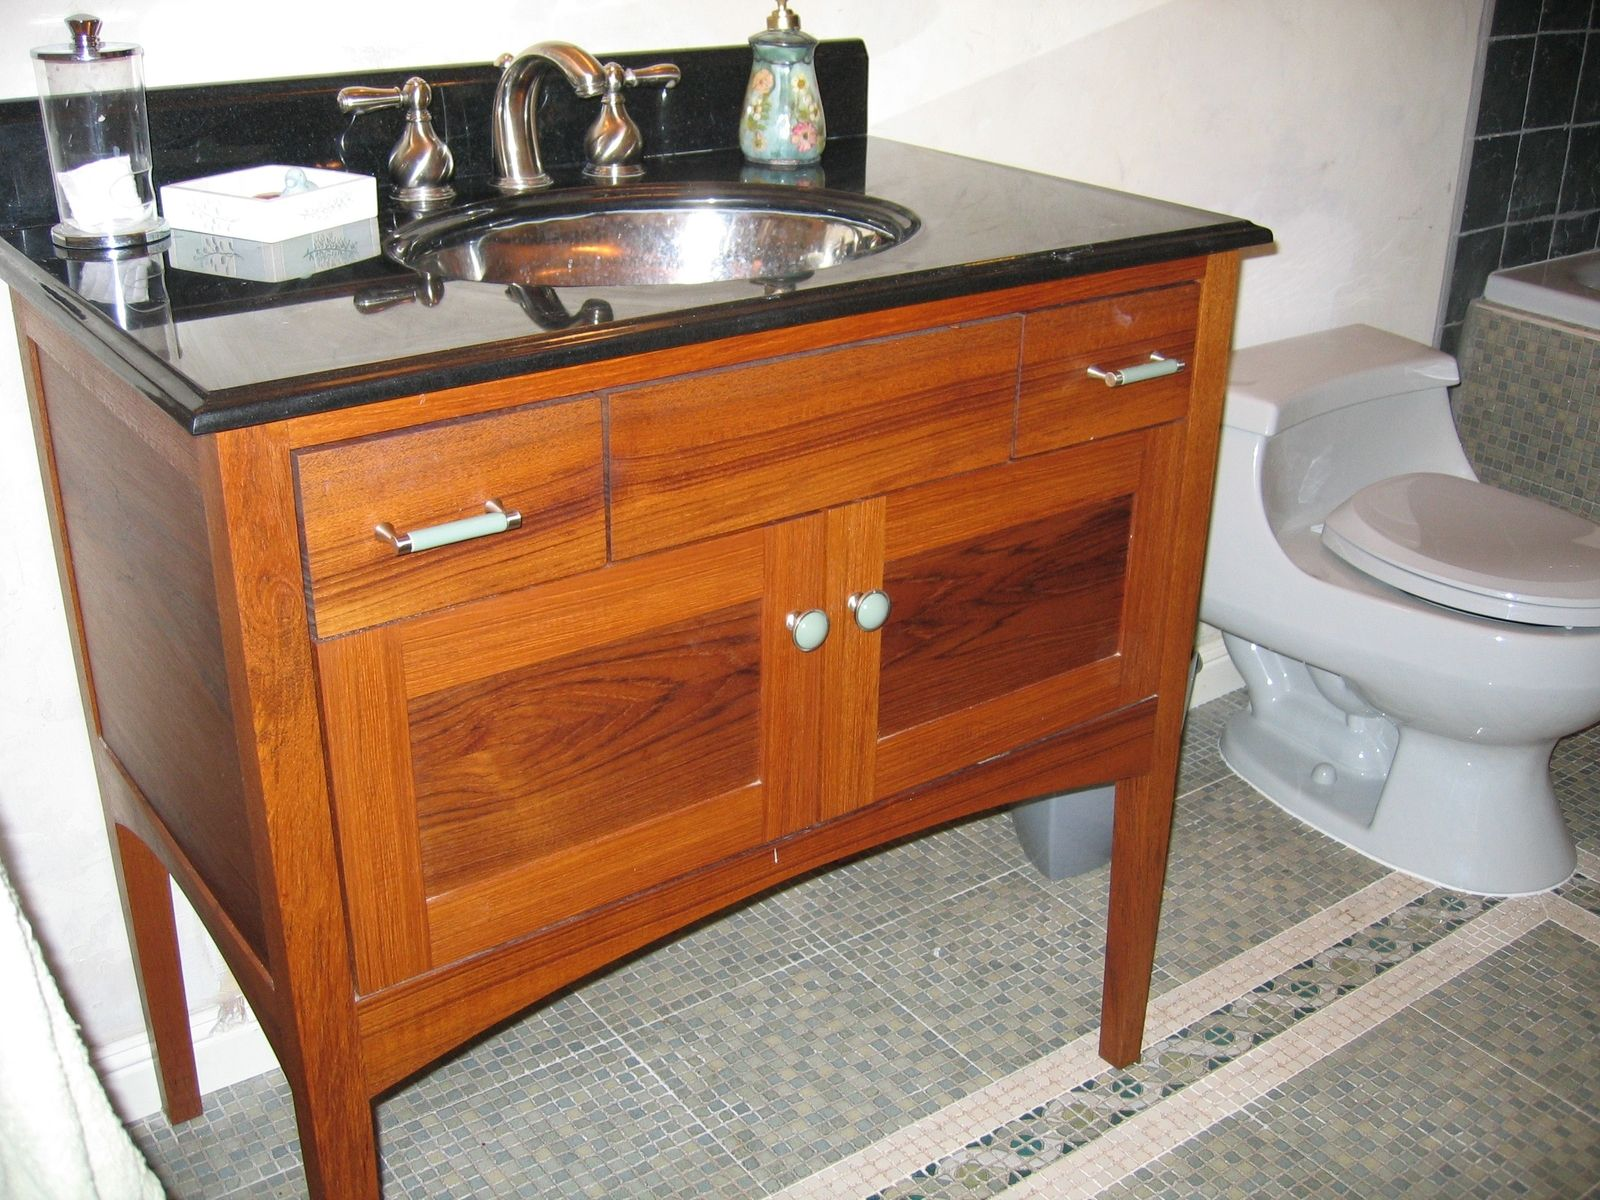 Custom Made Custom Teak Furniture Style Bathroom Vanity. Hand Crafted Custom Teak Furniture Style Bathroom Vanity by Near